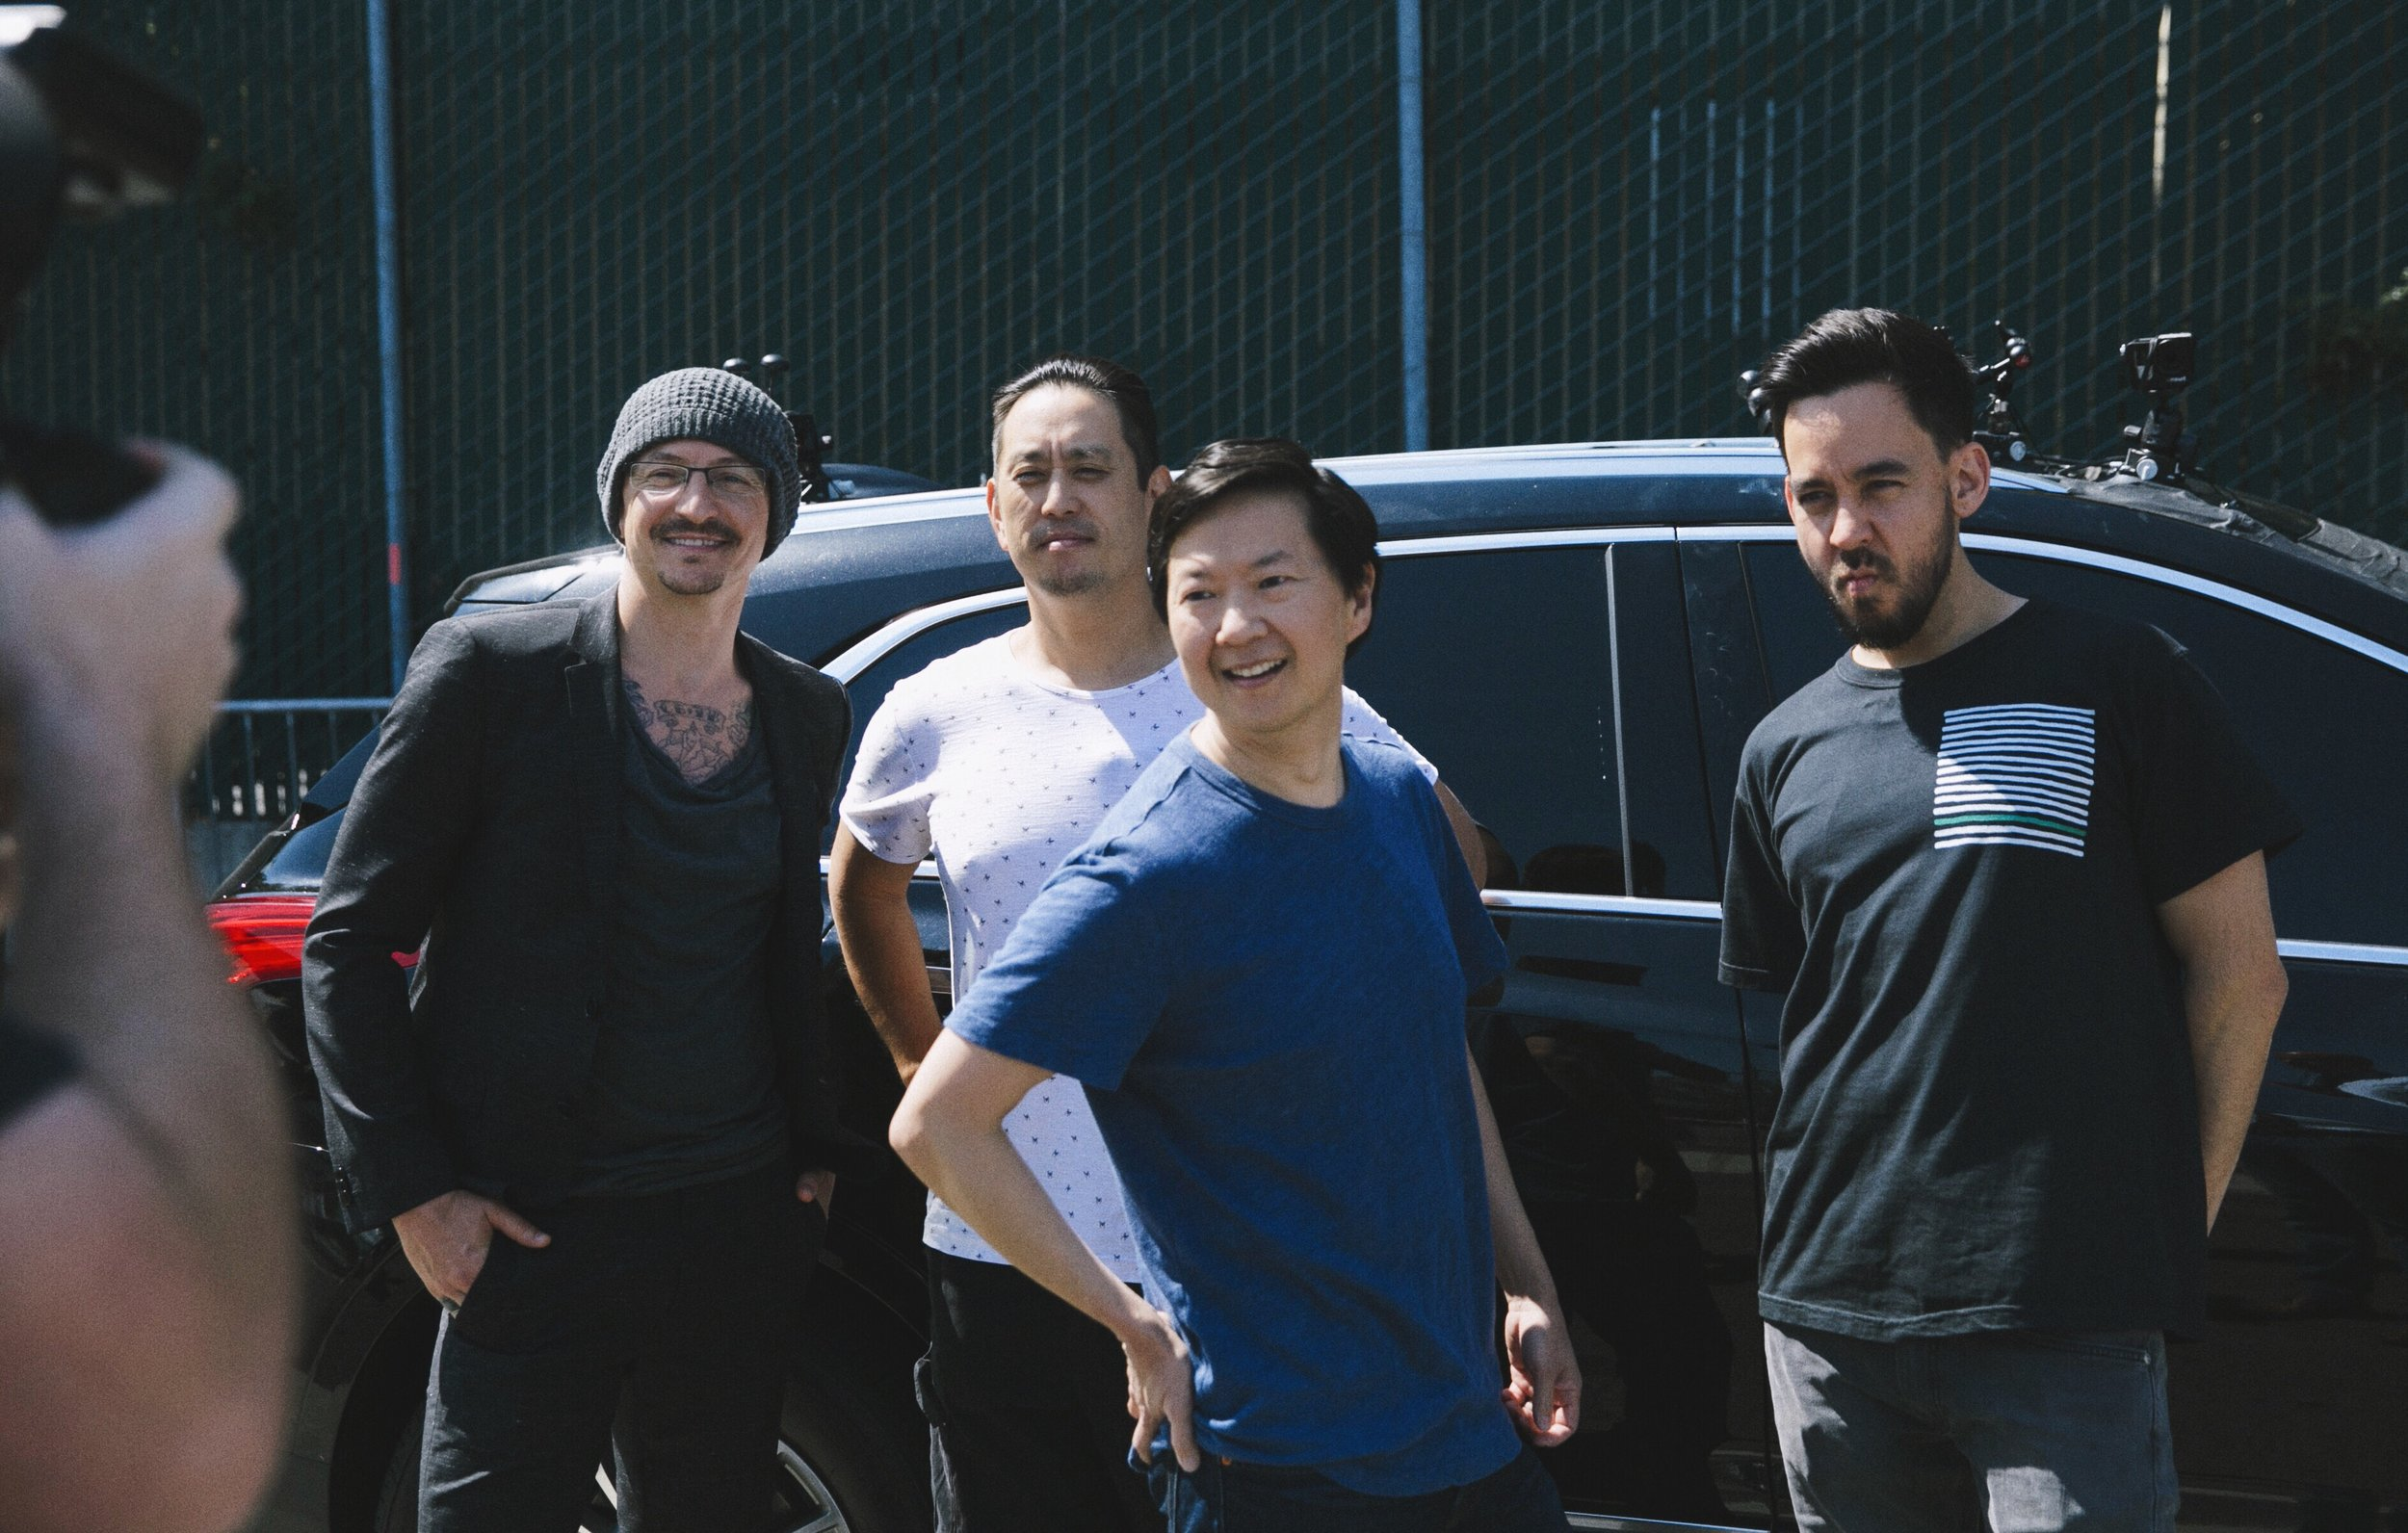 Linkin Park & Ken Jeong - Carpool Karaoke on Apple Music